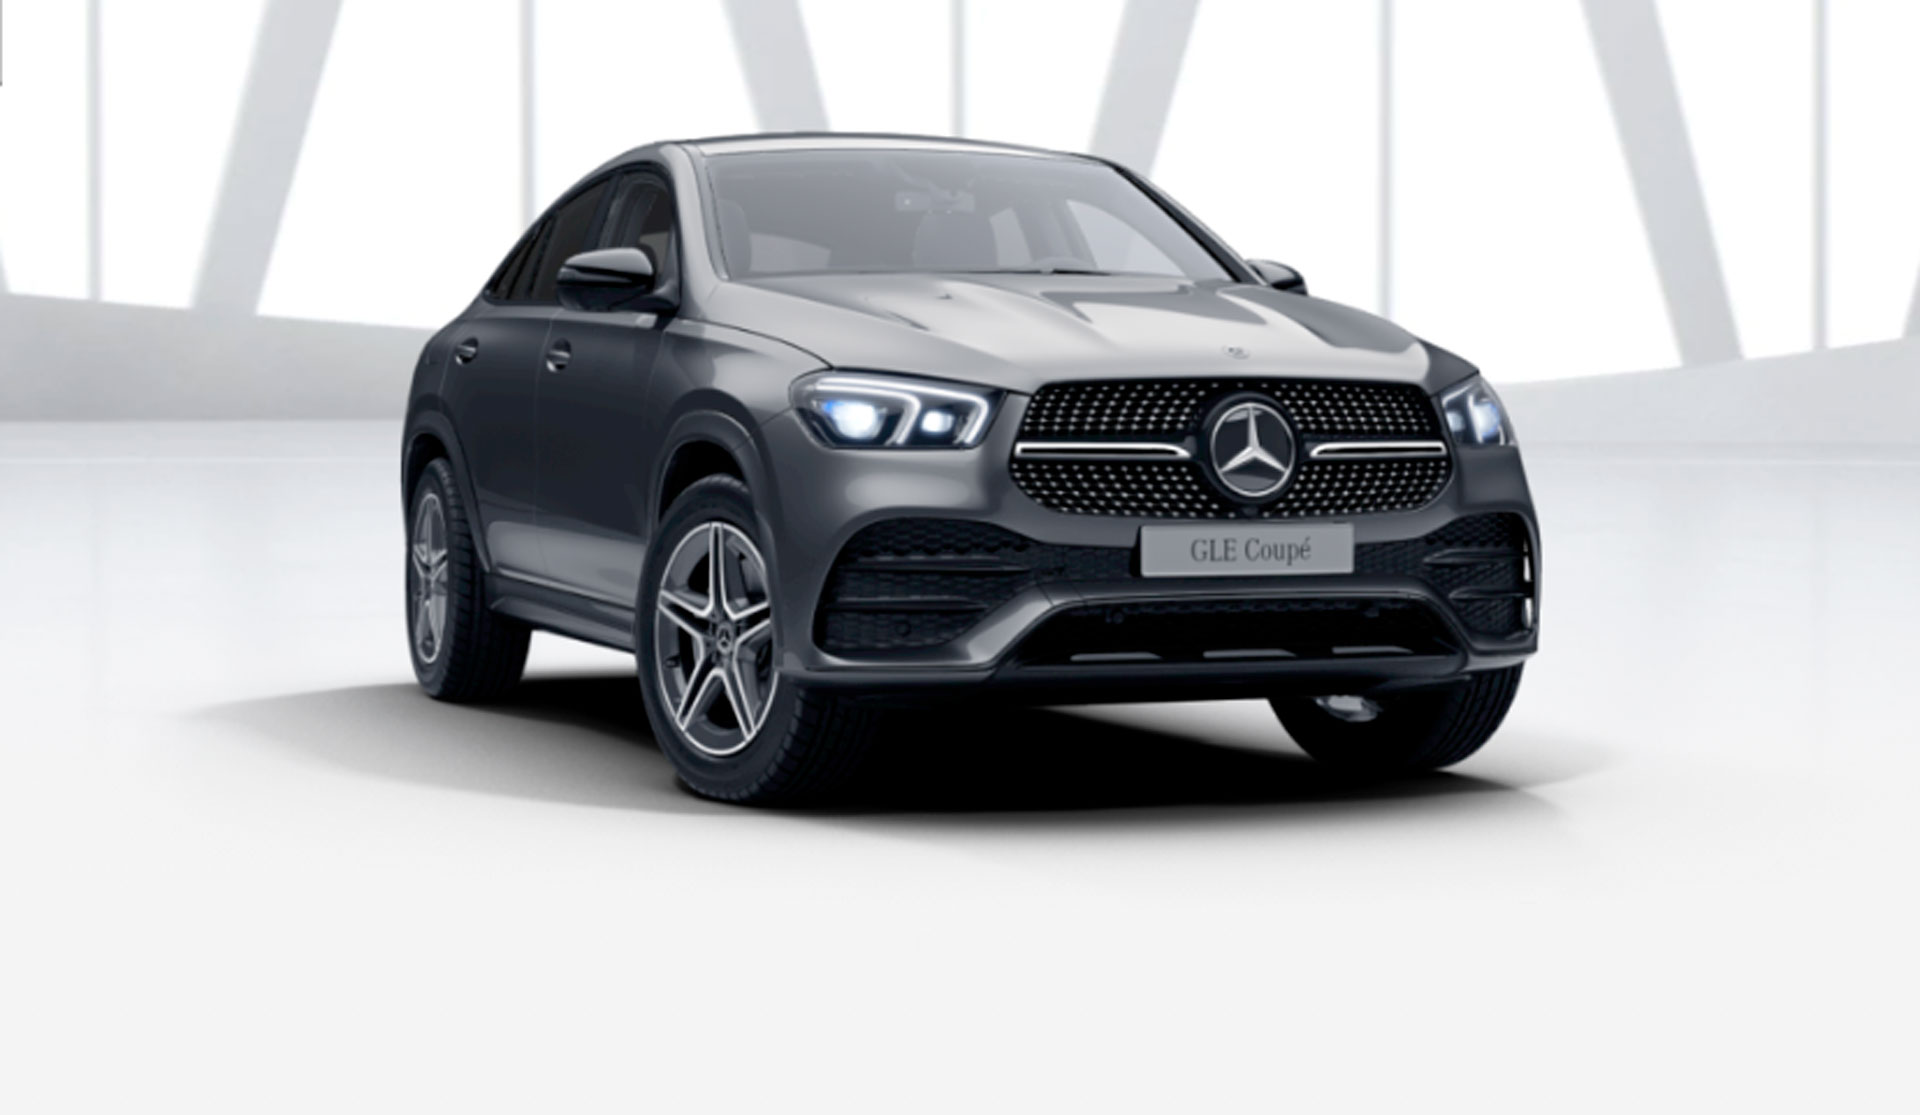 Mercedes-Benz GLE Coupe 0152600448